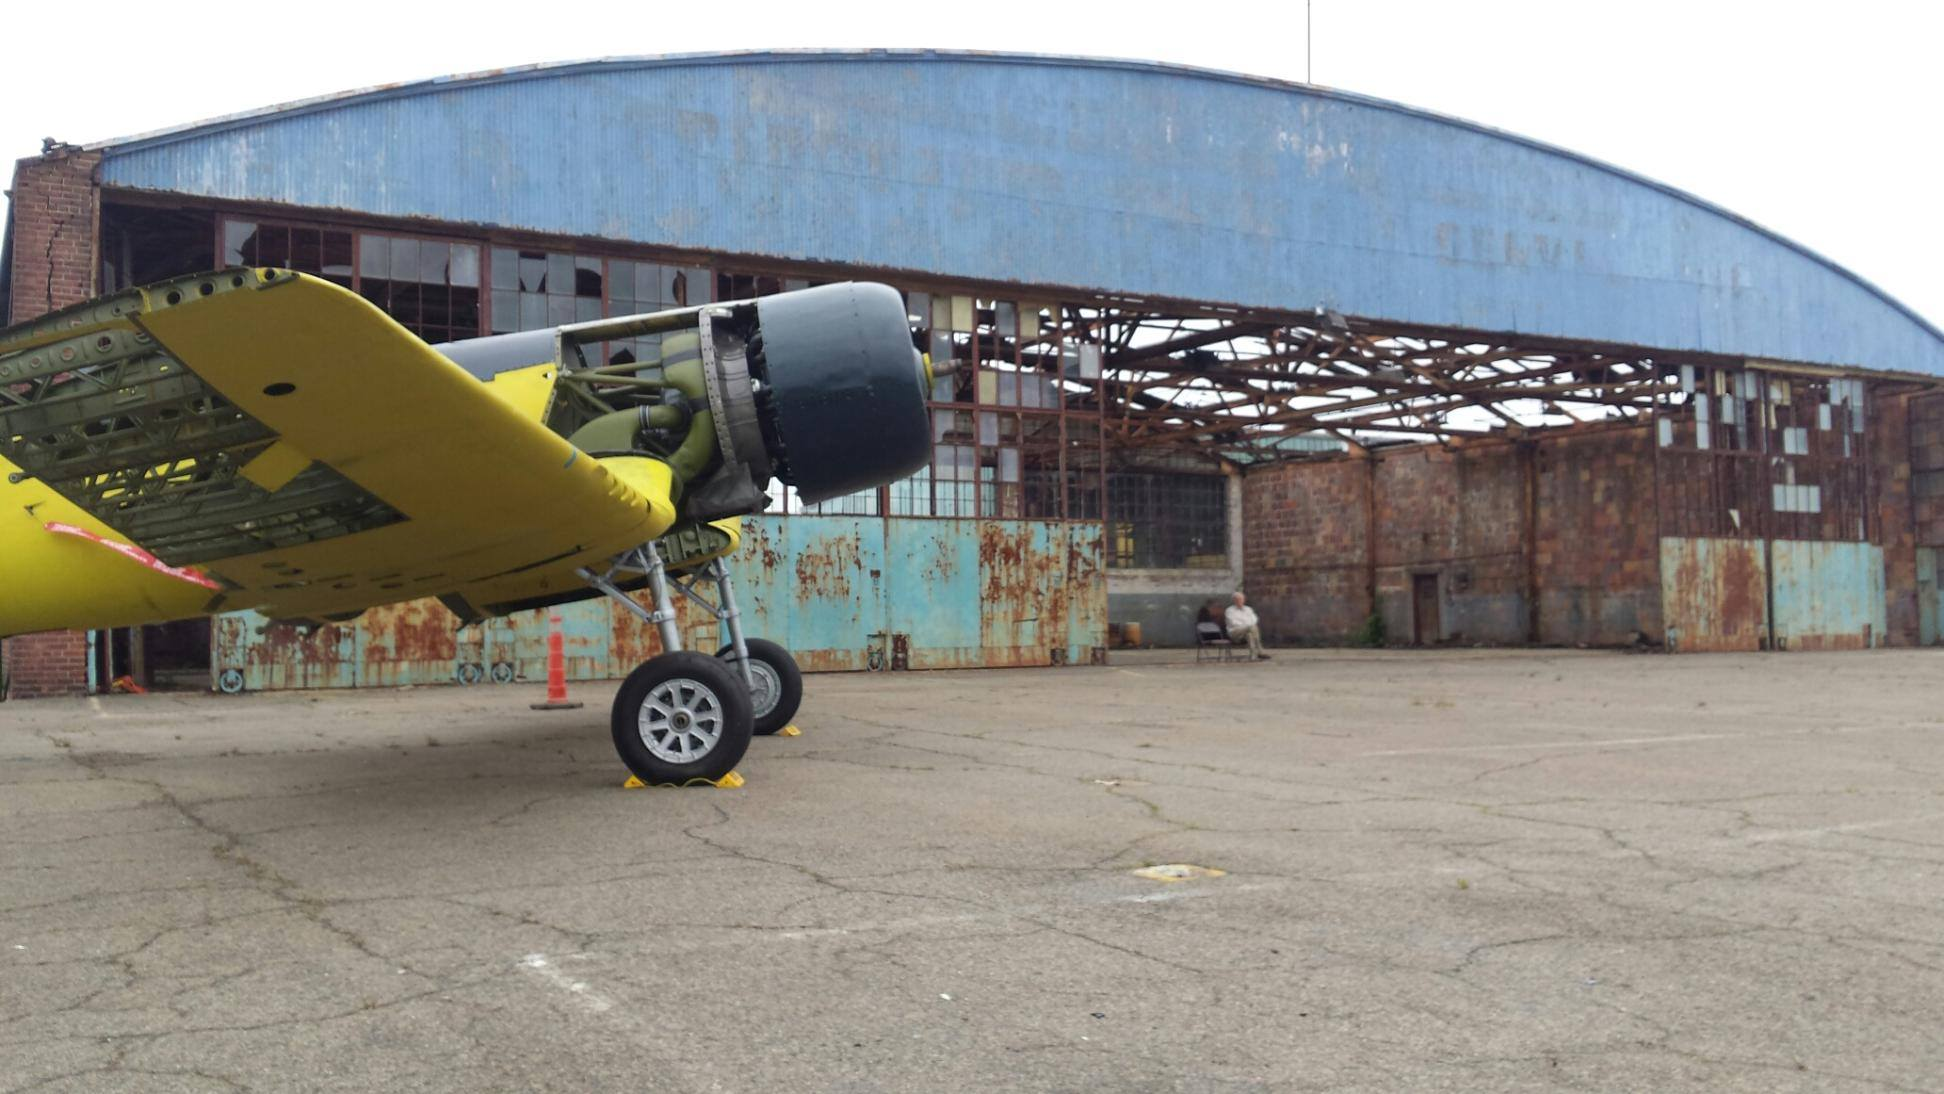 A neat shot of the CASC Corsair outside the Curtiss Flying School Hangar. Ed McGuinness, Corsair Restoration Project Manager and Treasurer to the Board of Directors, took the photograph. (photo via CASC)